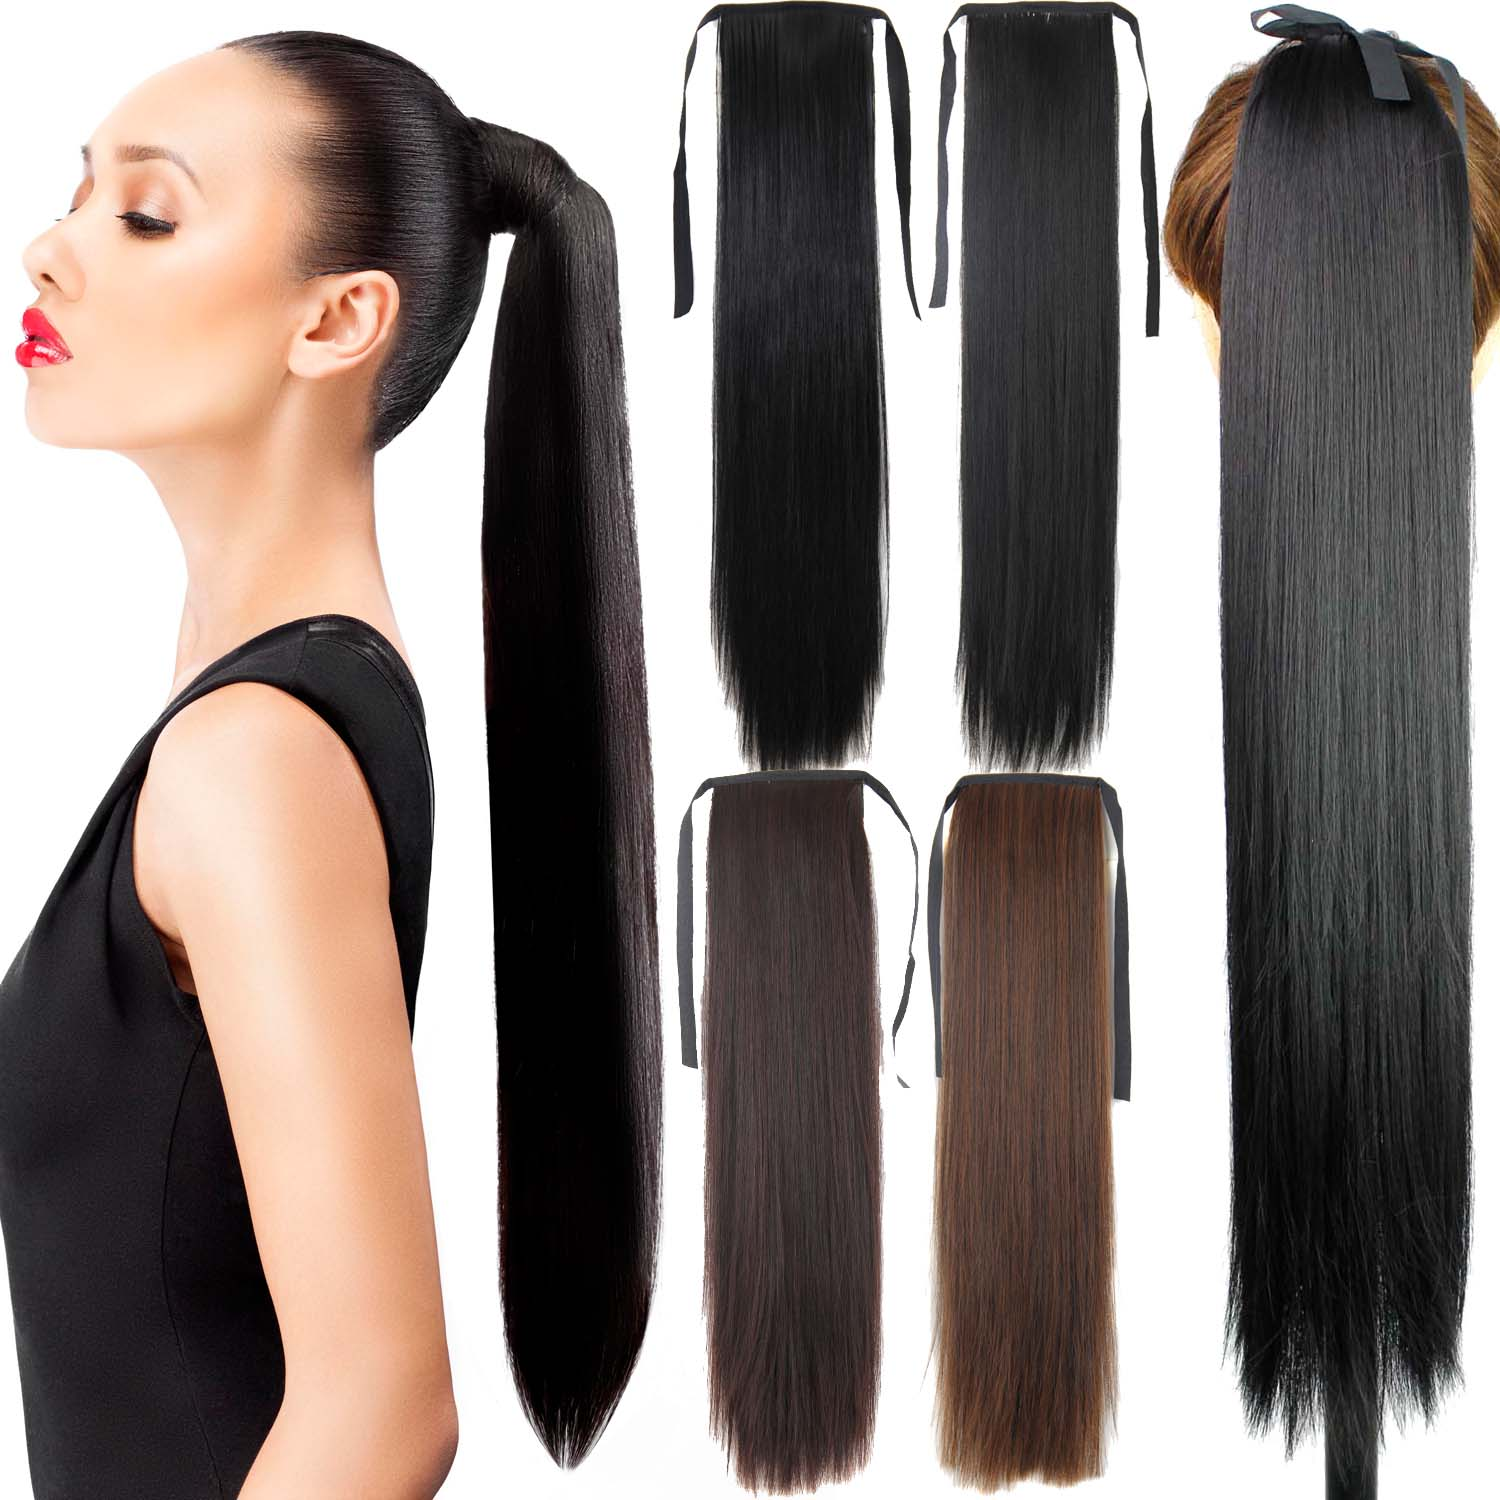 Fake Hair Ponytail 105g 22 Long Straight Hair Pieces